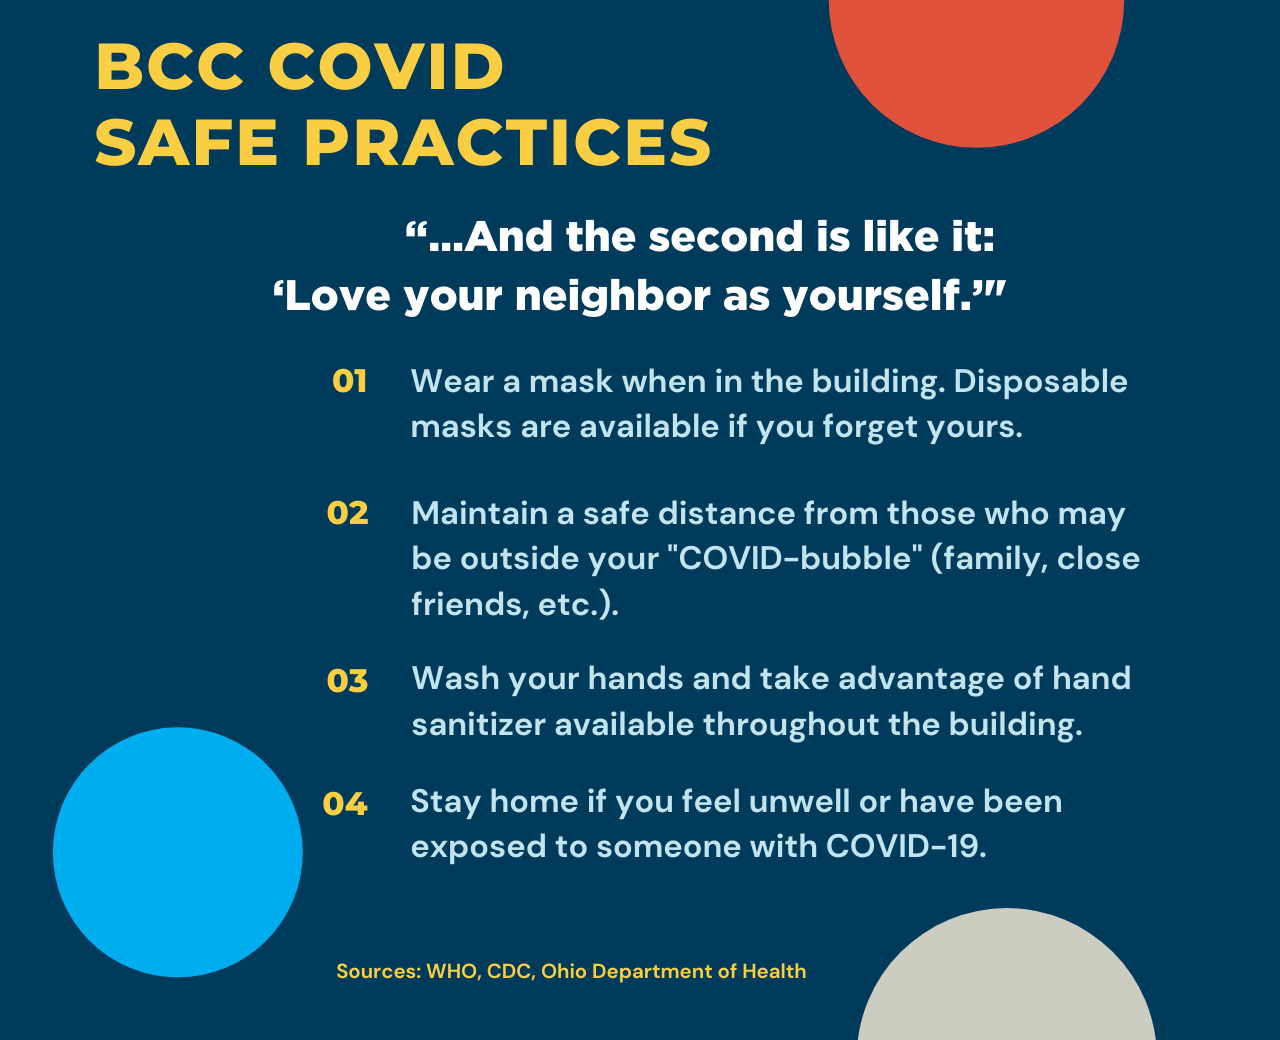 BCC COVID Safe Practices